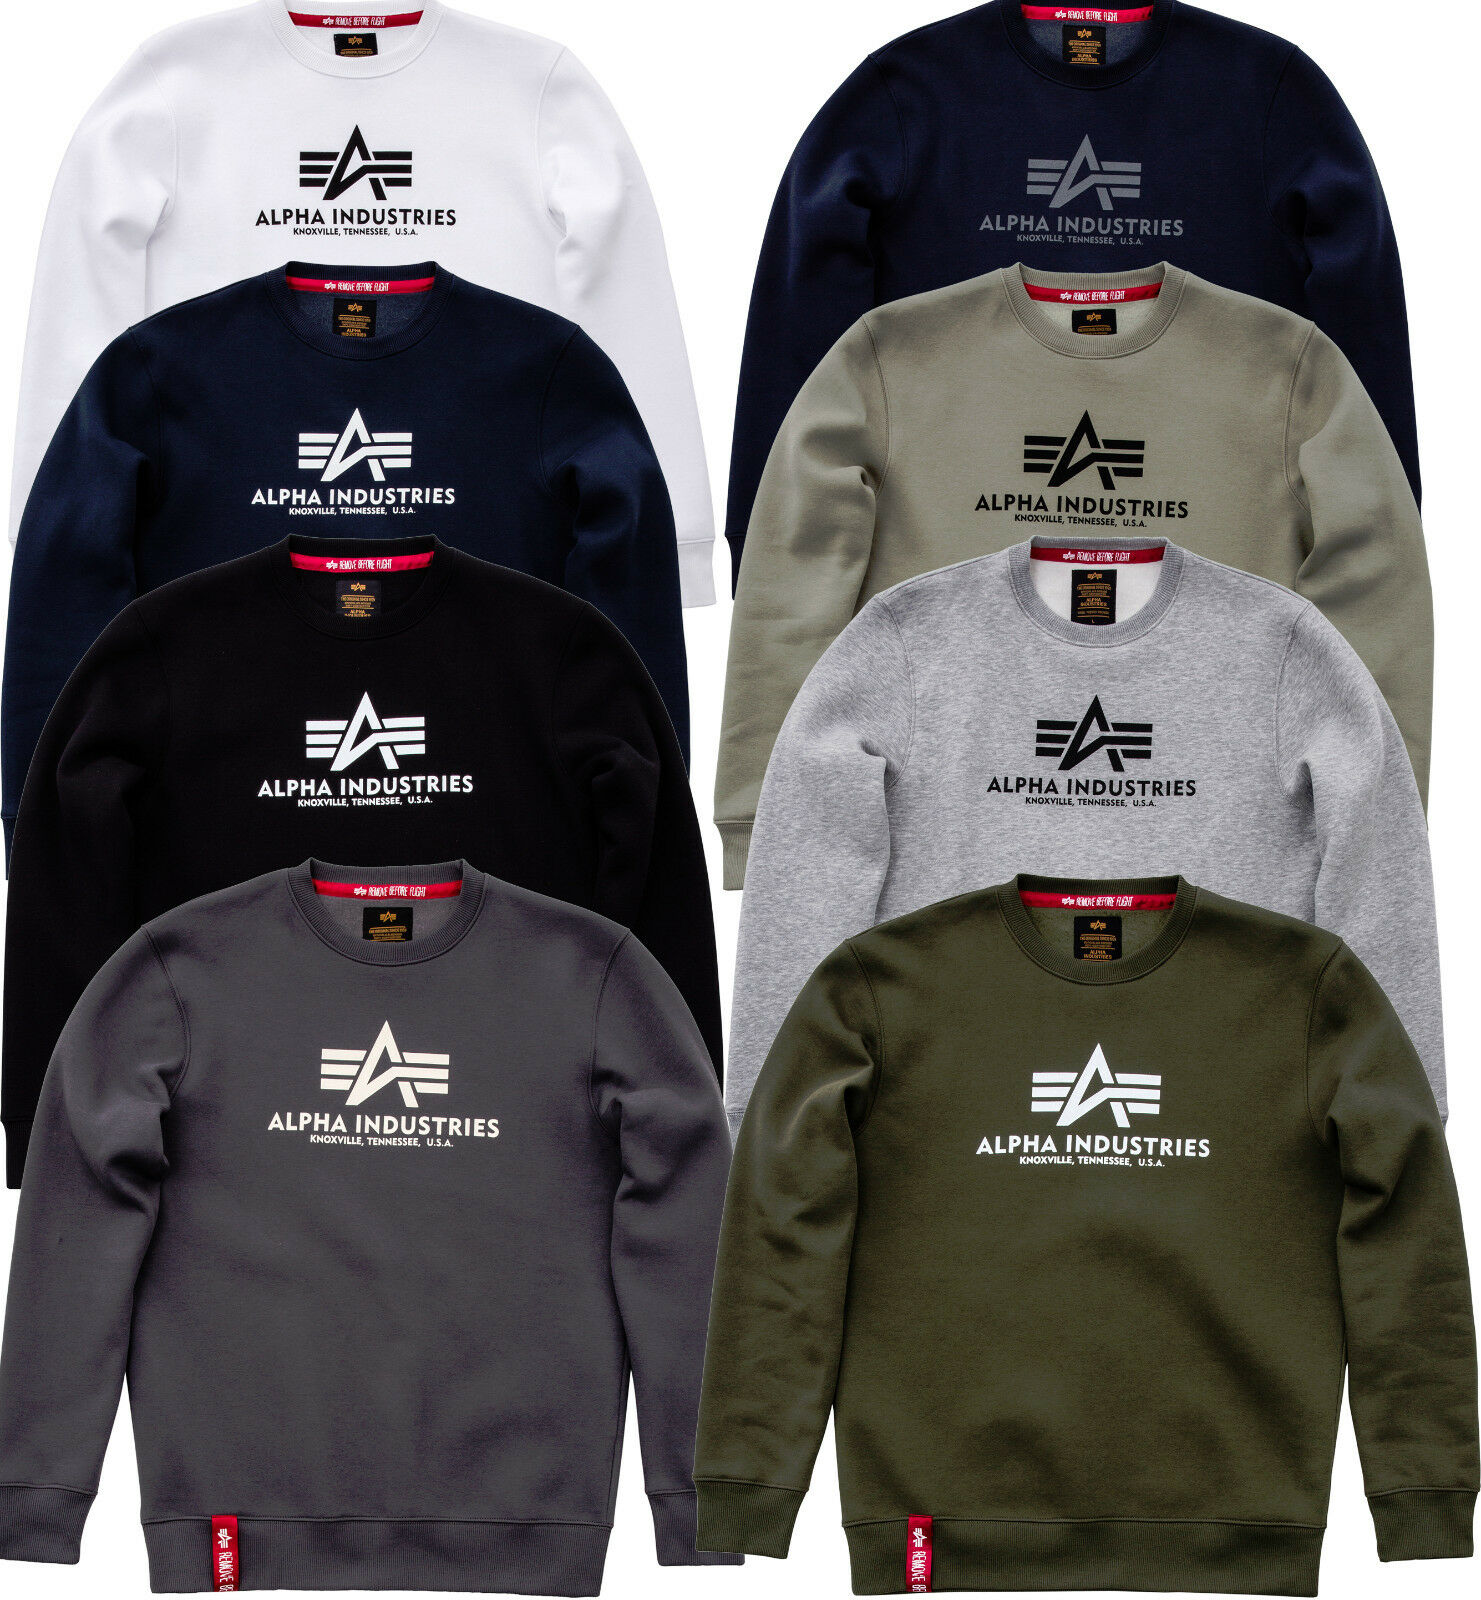 Alpha Industries Basic Pullover Sweater Black Navy White Olive Grey Pull Over